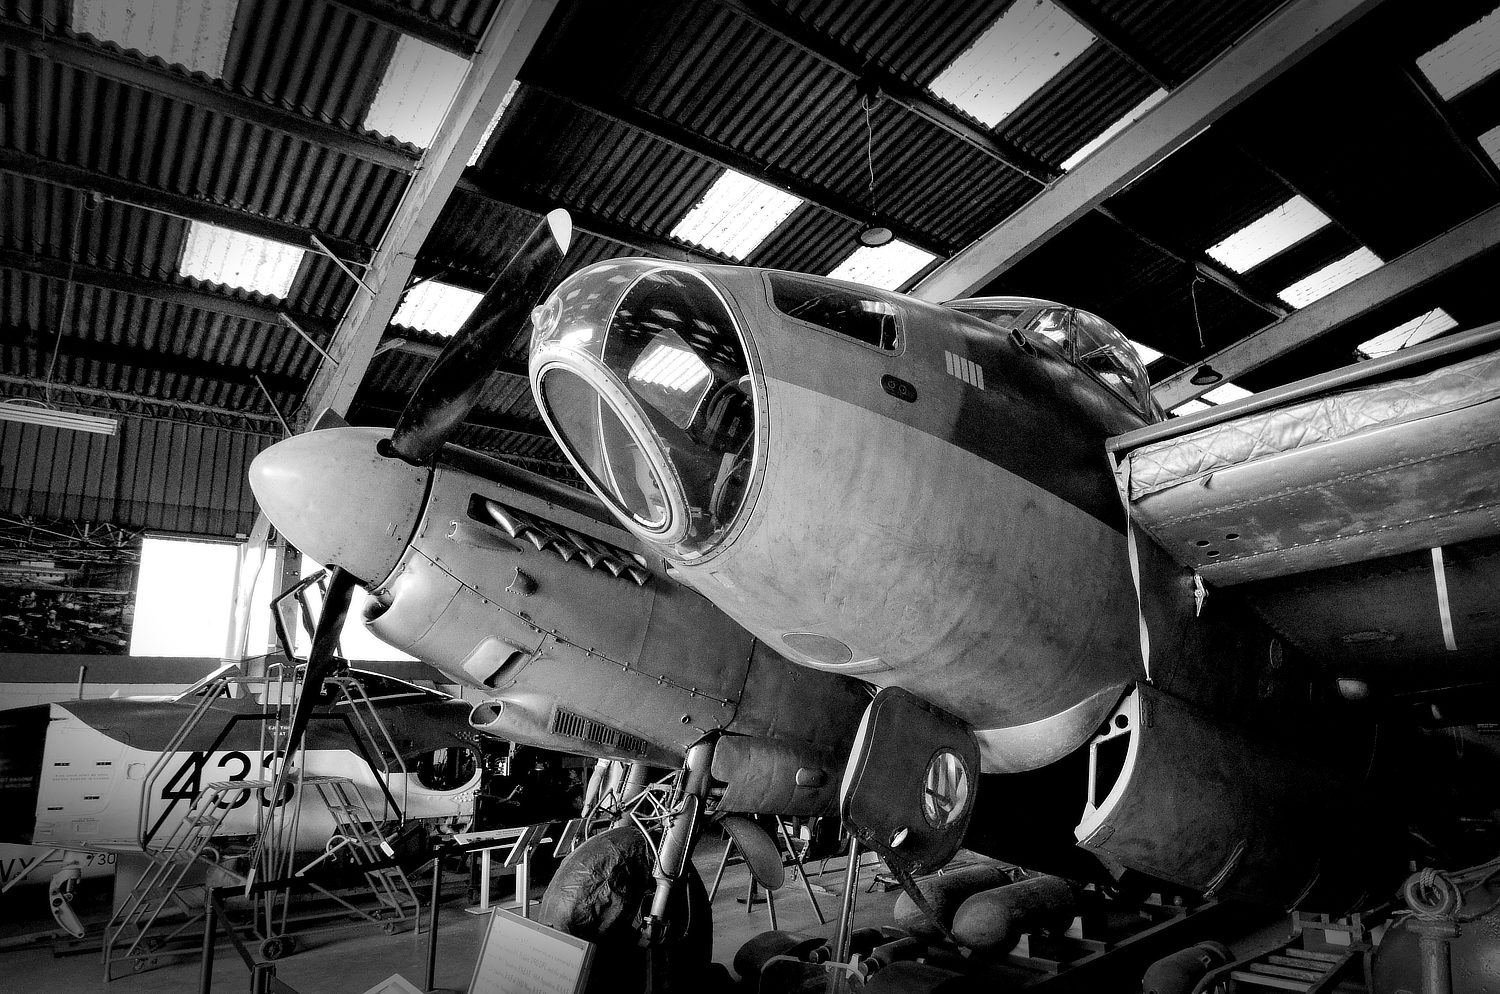 Front of De Havilland Mosquito